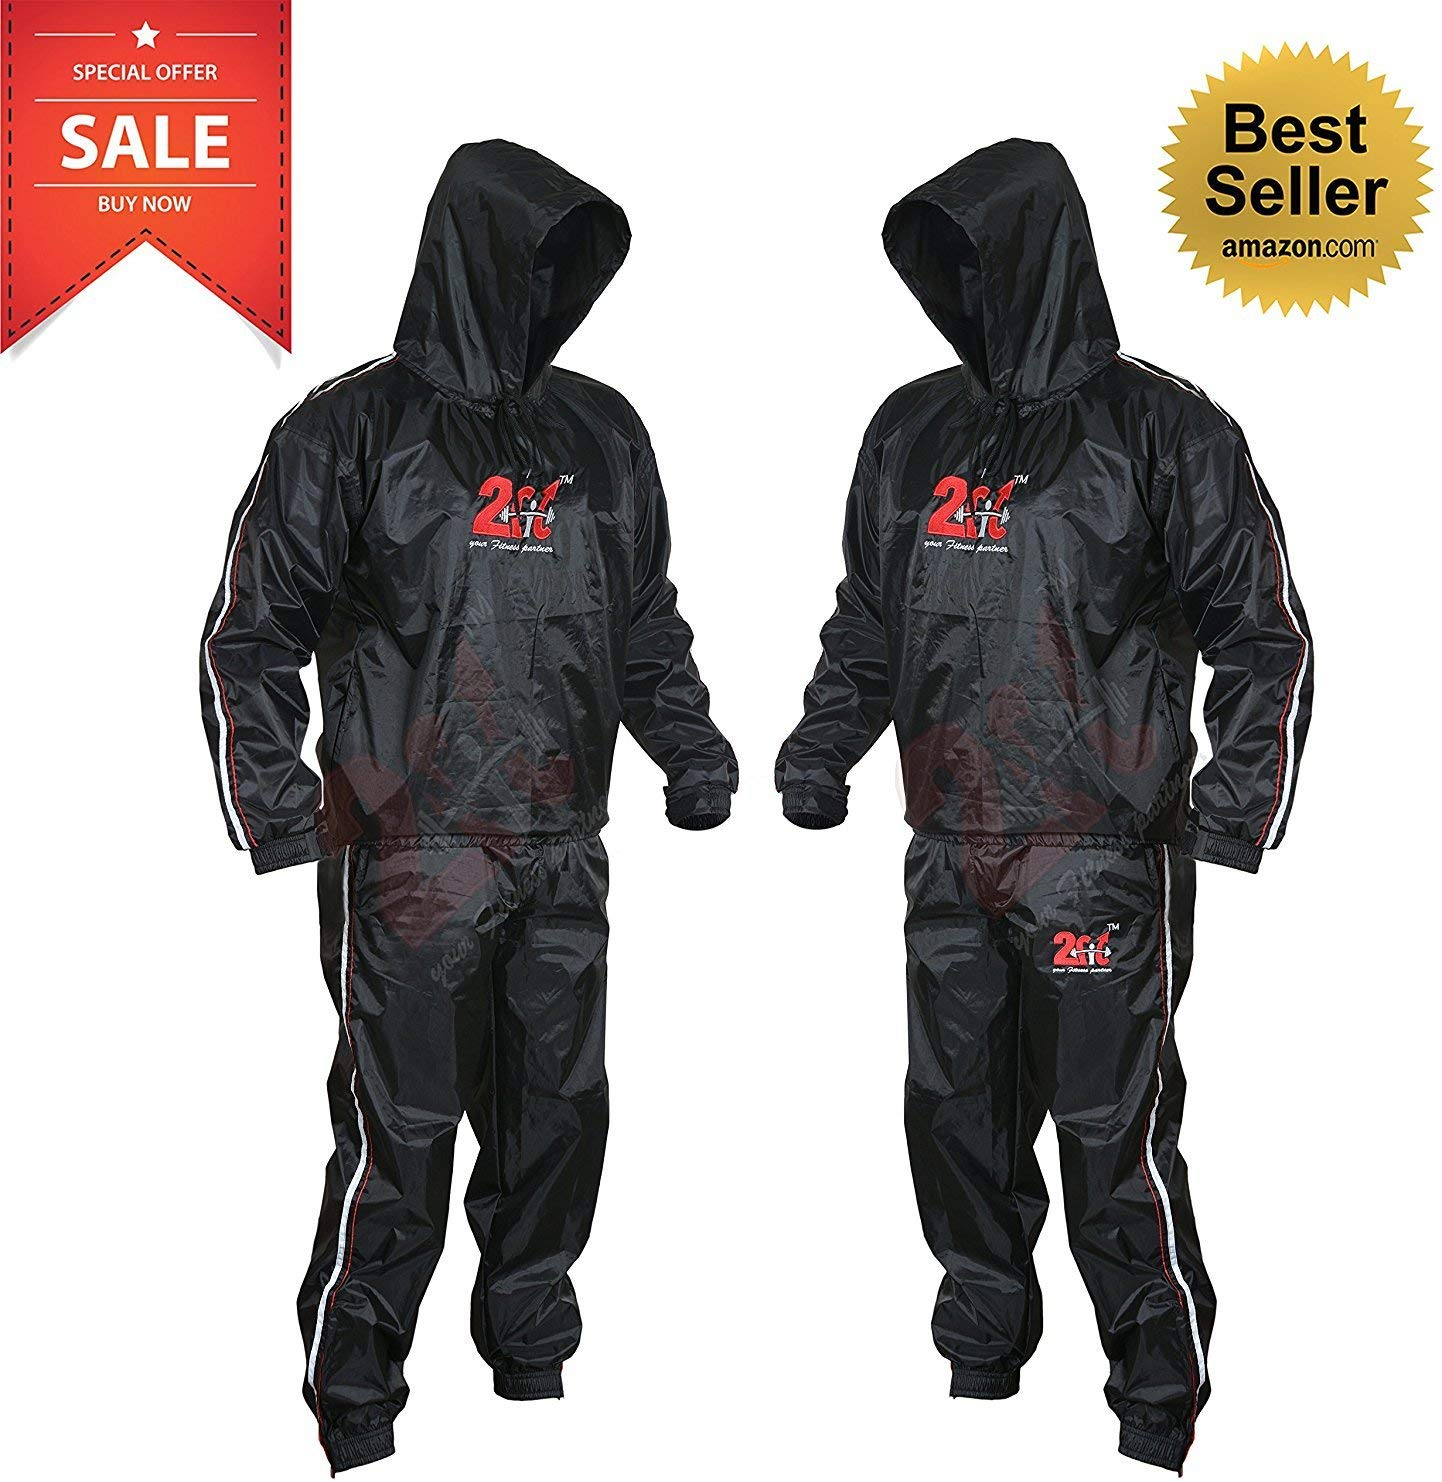 2Fit Heavy-Duty Sauna Suit